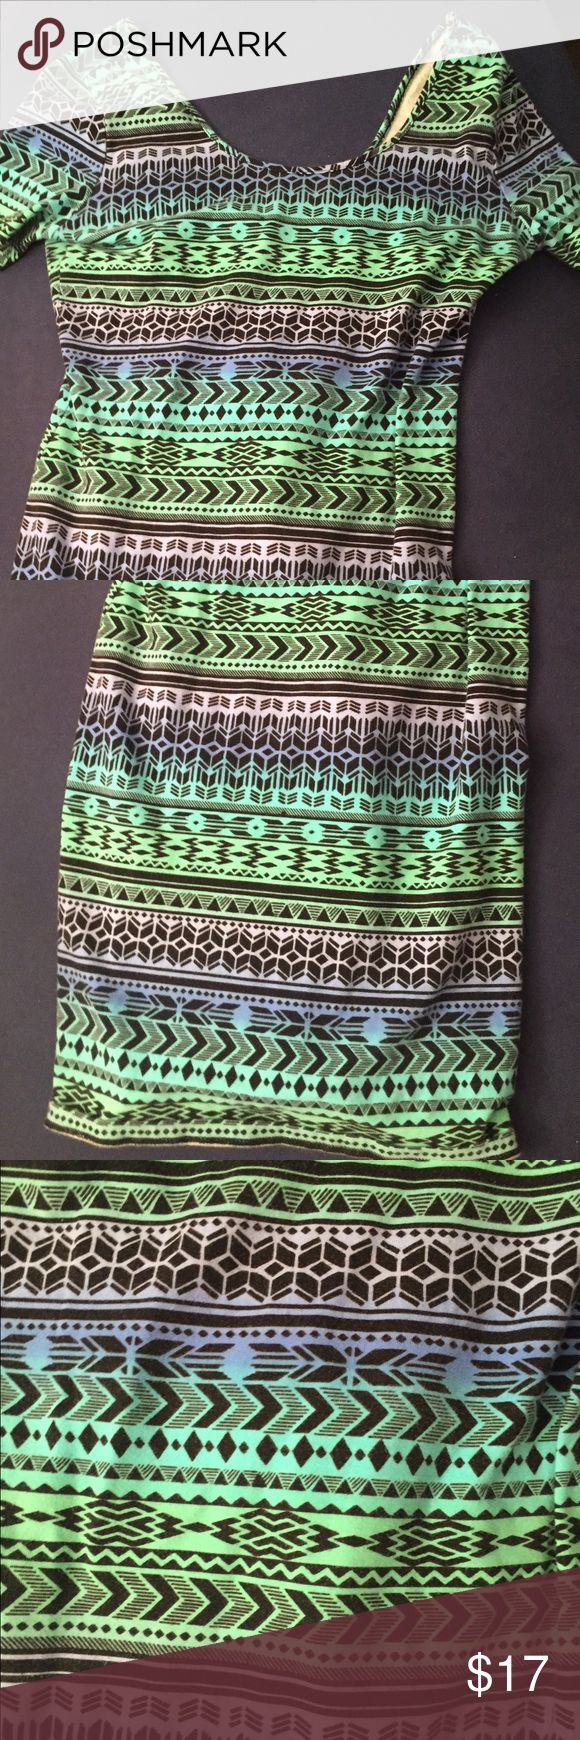 Aztec Print Bodycon Dress Awesome colors! Smoke/pet free as always.  Accepting reasonable offers. Forever 21 Dresses